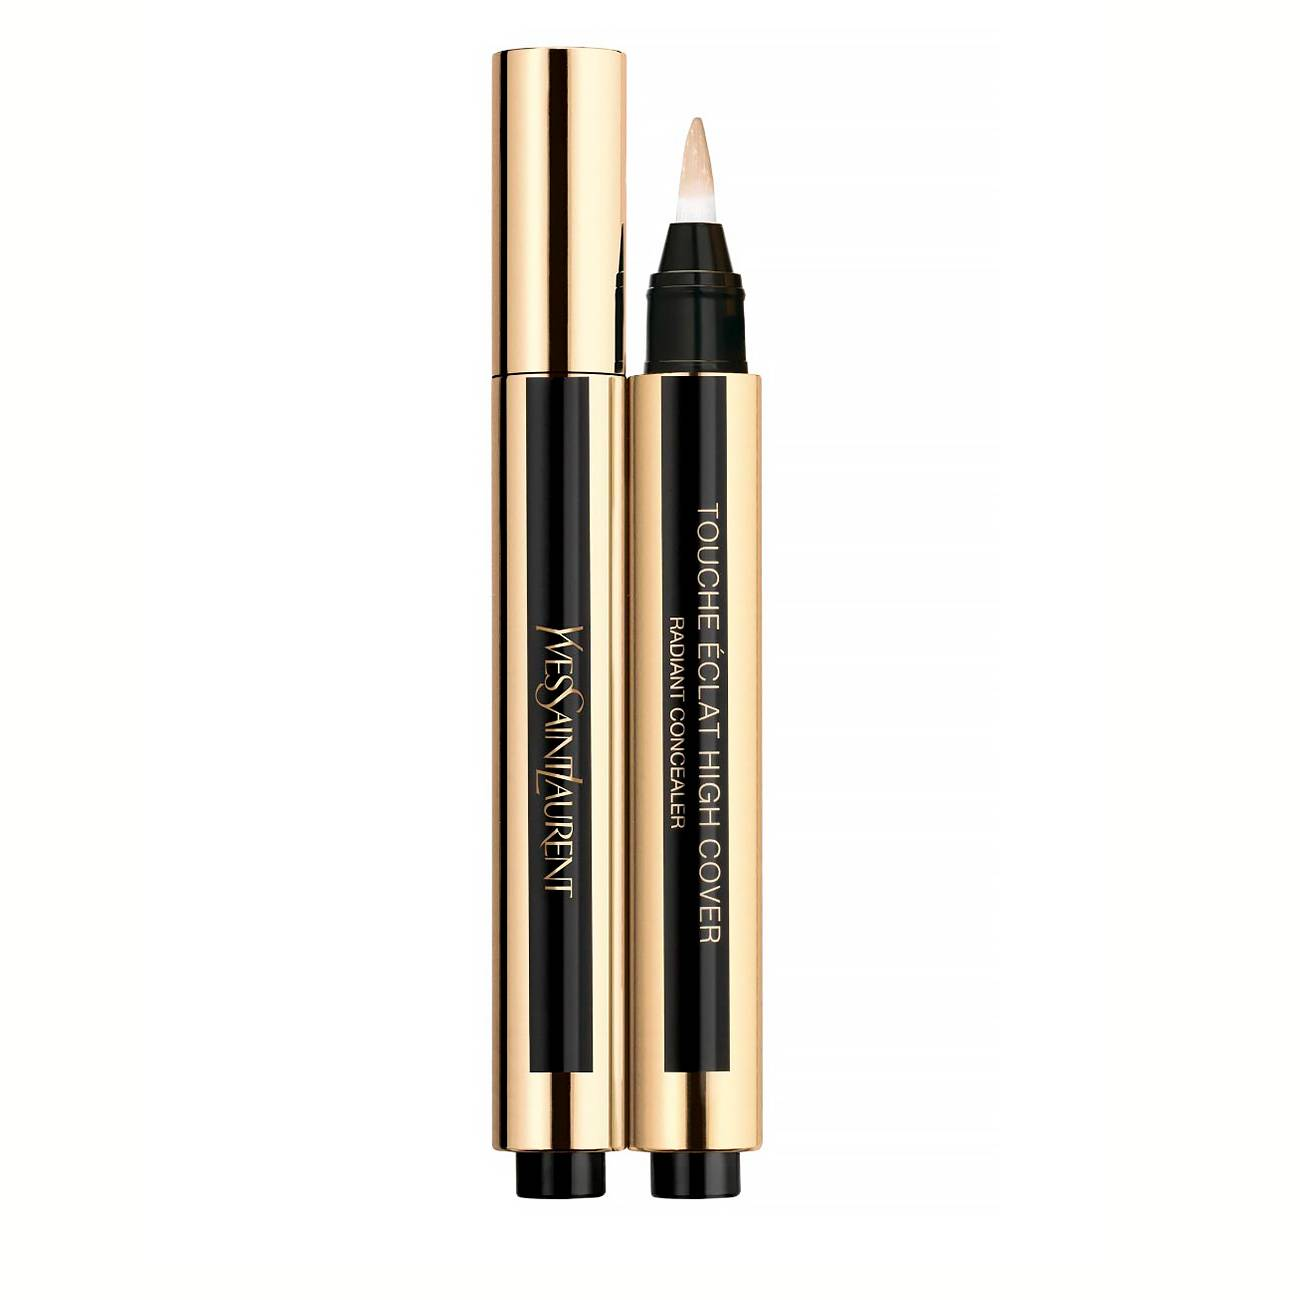 Touche Éclat Concealer 0.5 2.5ml Yves Saint Laurent imagine 2021 bestvalue.eu